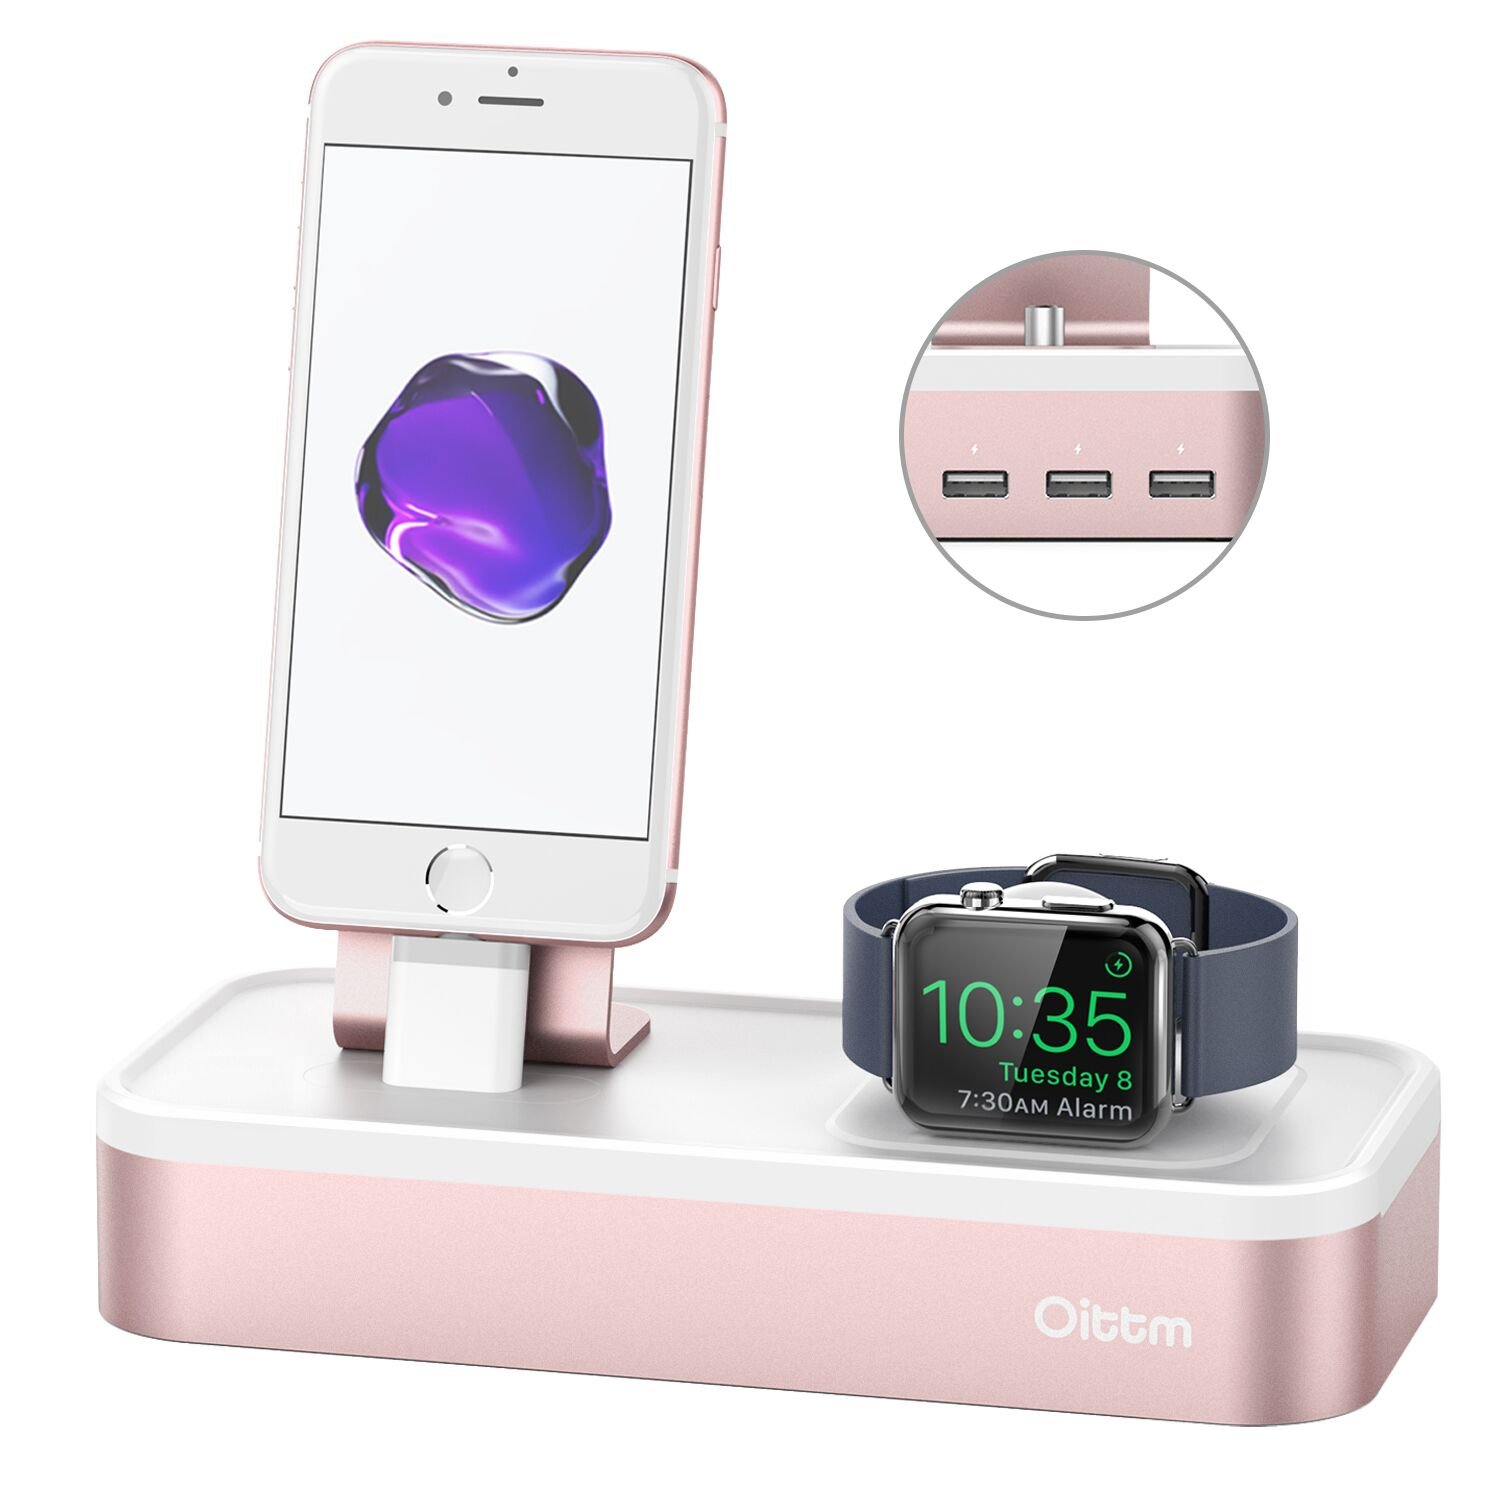 Apple Watch Series 3 Stand, Oittm [5 in 1 New Version] 5-port USB Rechargeable Stand for iWatch Series 3/2/1, iPhone X, 8, 8 Plus, 7, 7 Plus, 6, iPad Mini, iPod, Apple Pencil (Rose Gold)